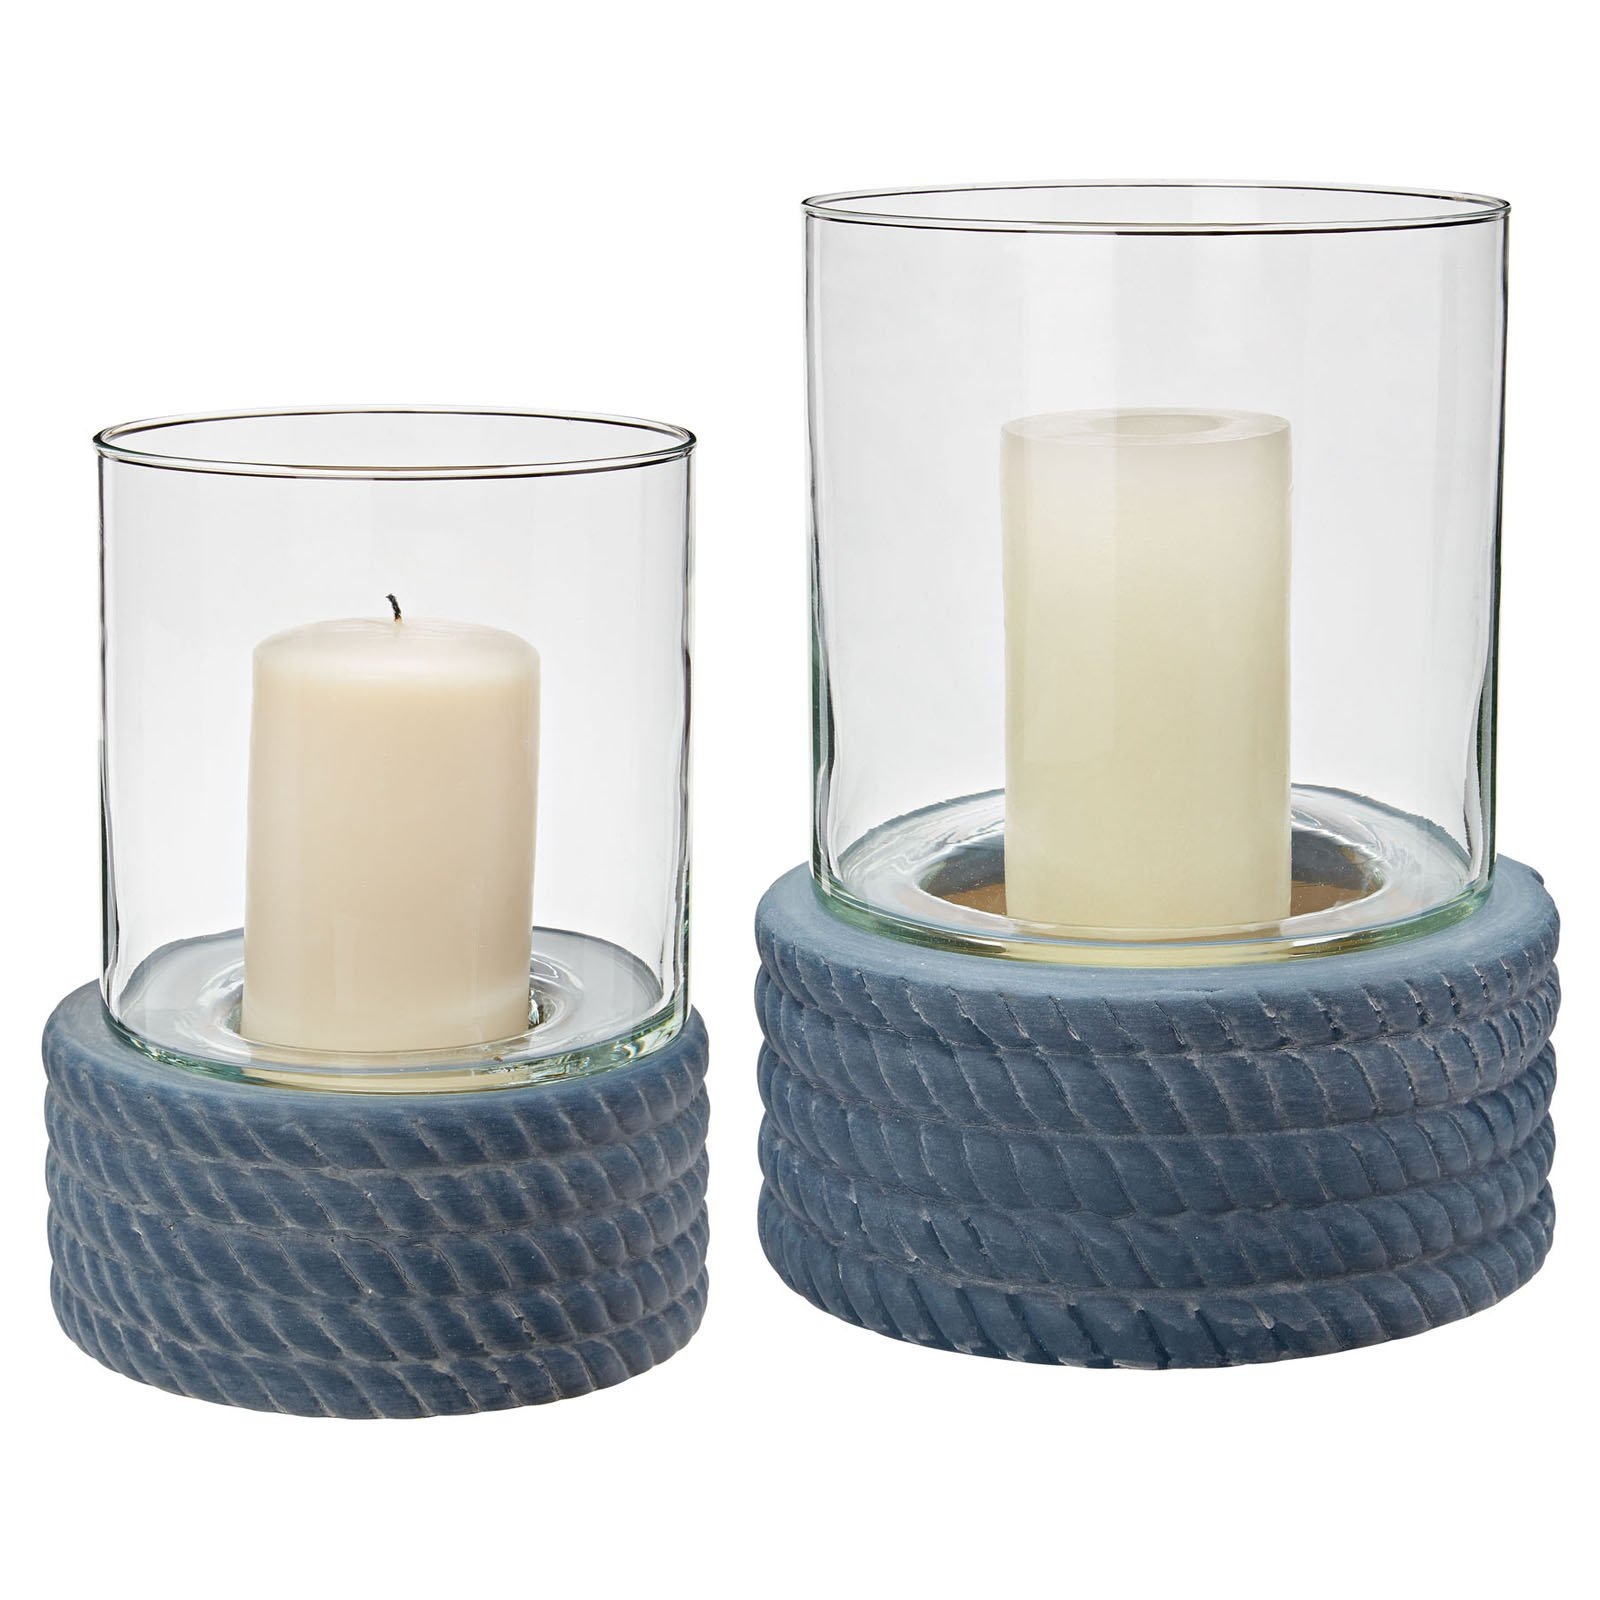 Dimond Home Coiled Rope Hurricanes Candle Holder